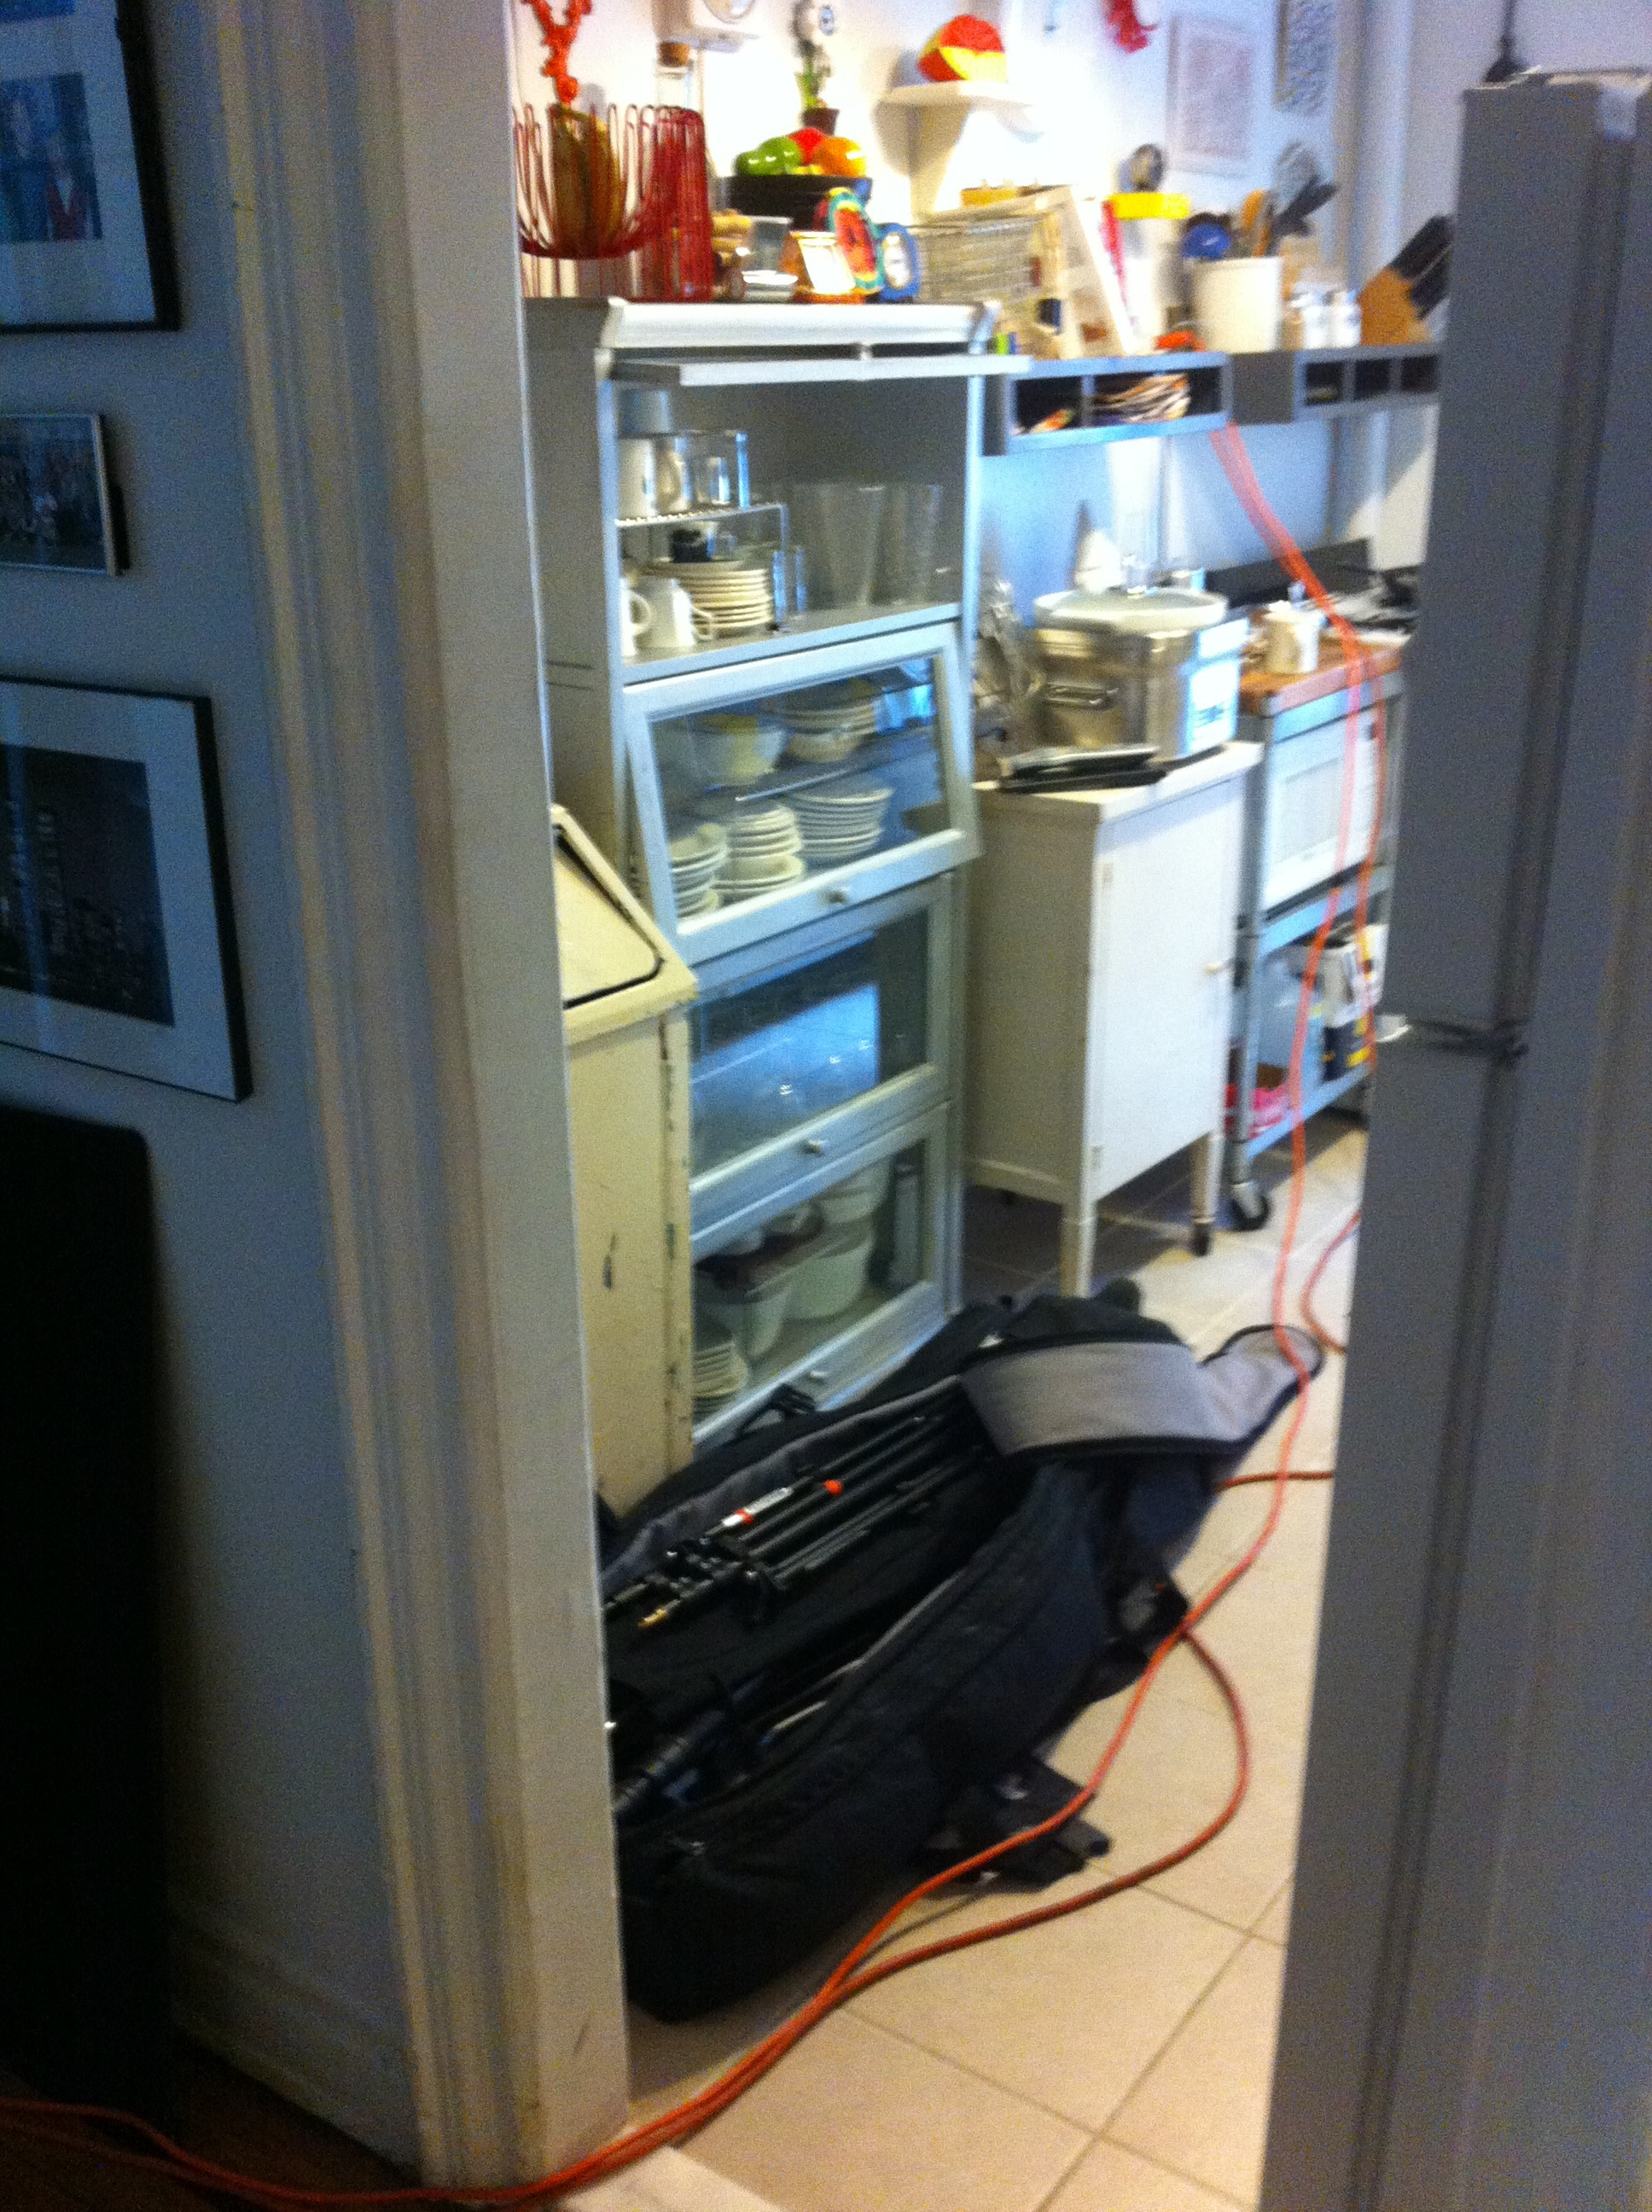 A pic of Bob Martus' photo equipment raging in PJ Mehaffey's kitchen